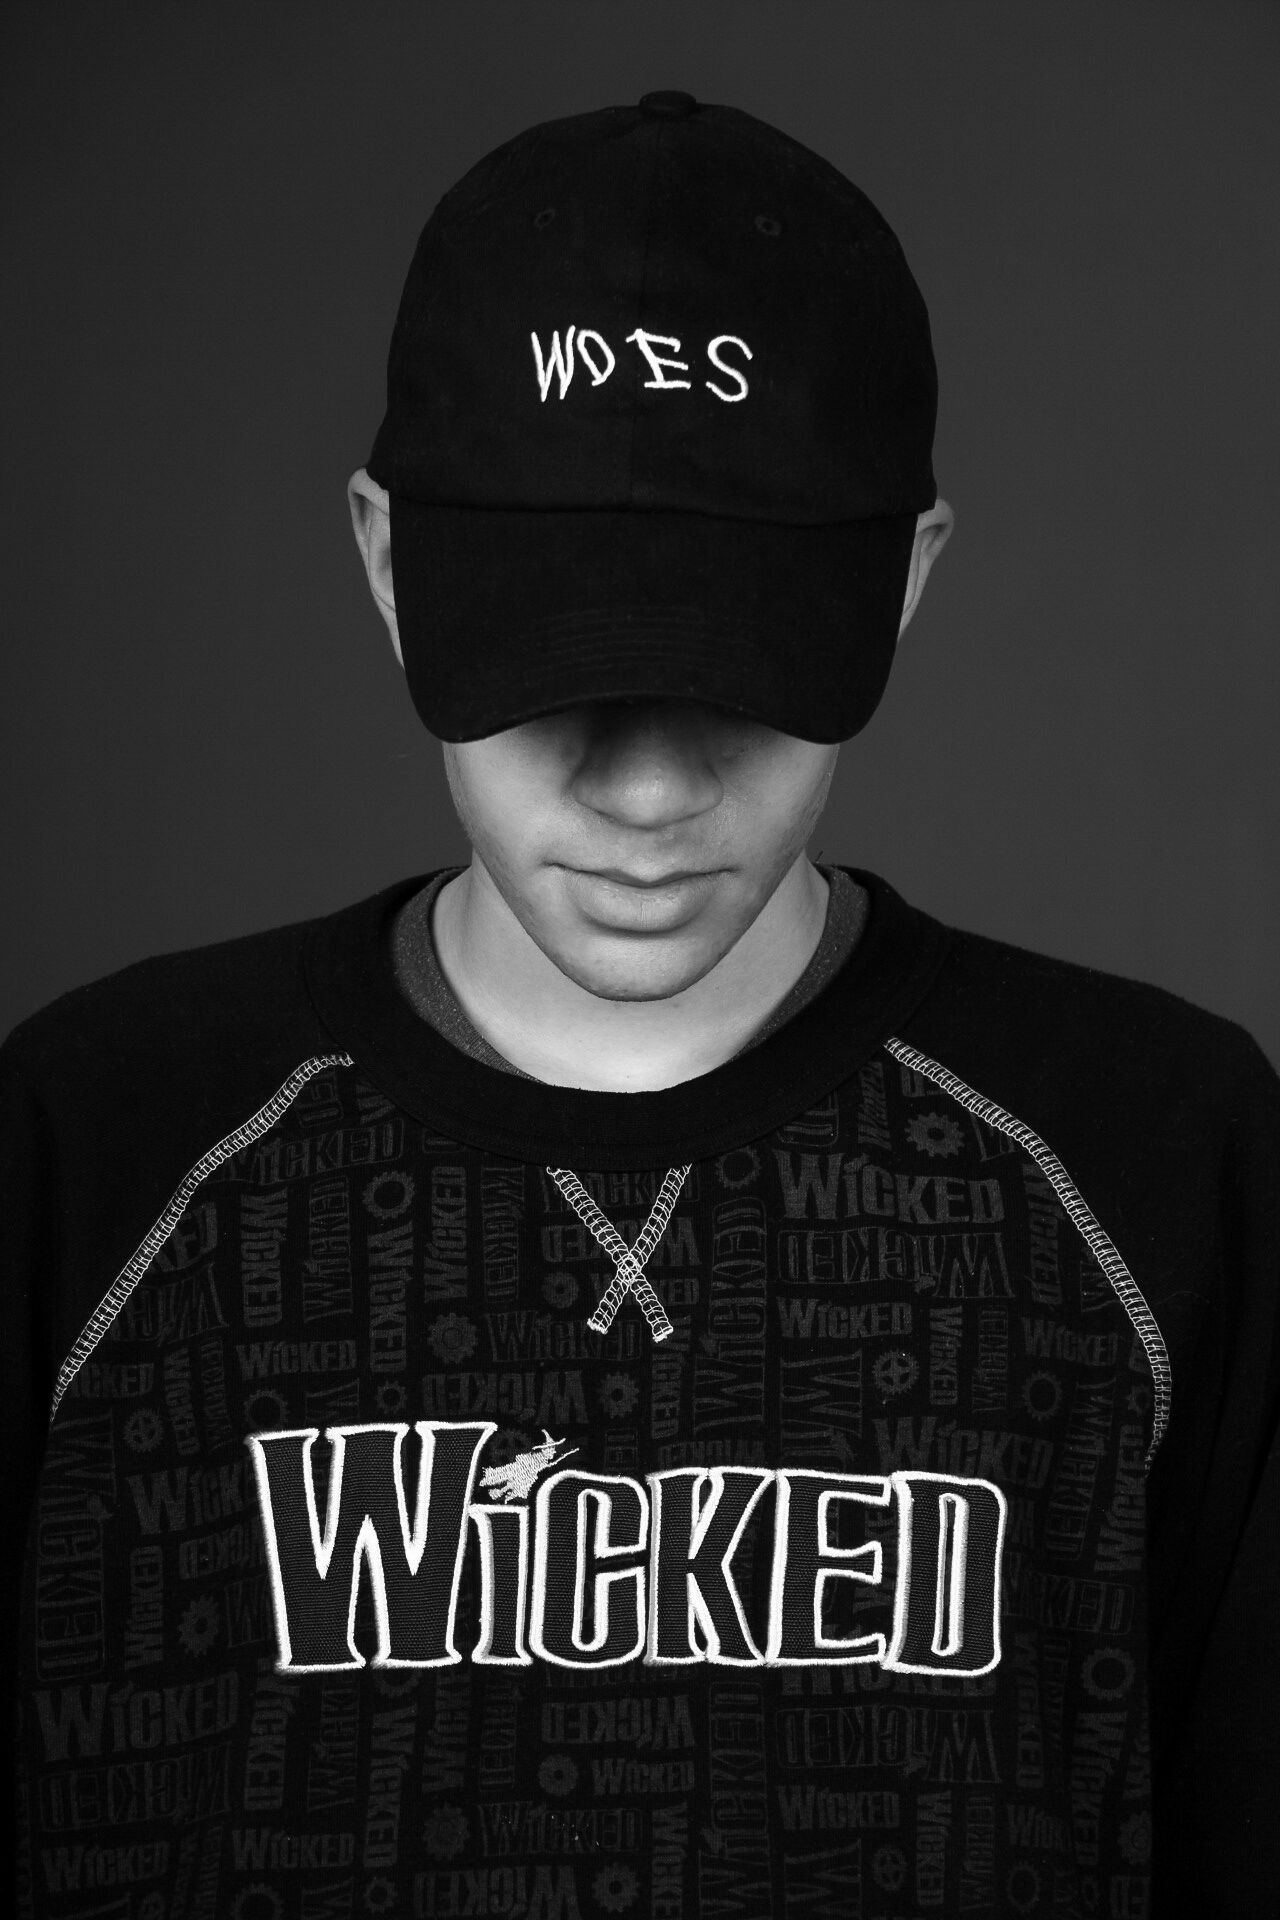 Woes Looking At Camera Mature Adult Portrait One Person People Adults Only One Man Only Young Adult Adult Drake  Music Rap Bryson Tiller NYC Studio